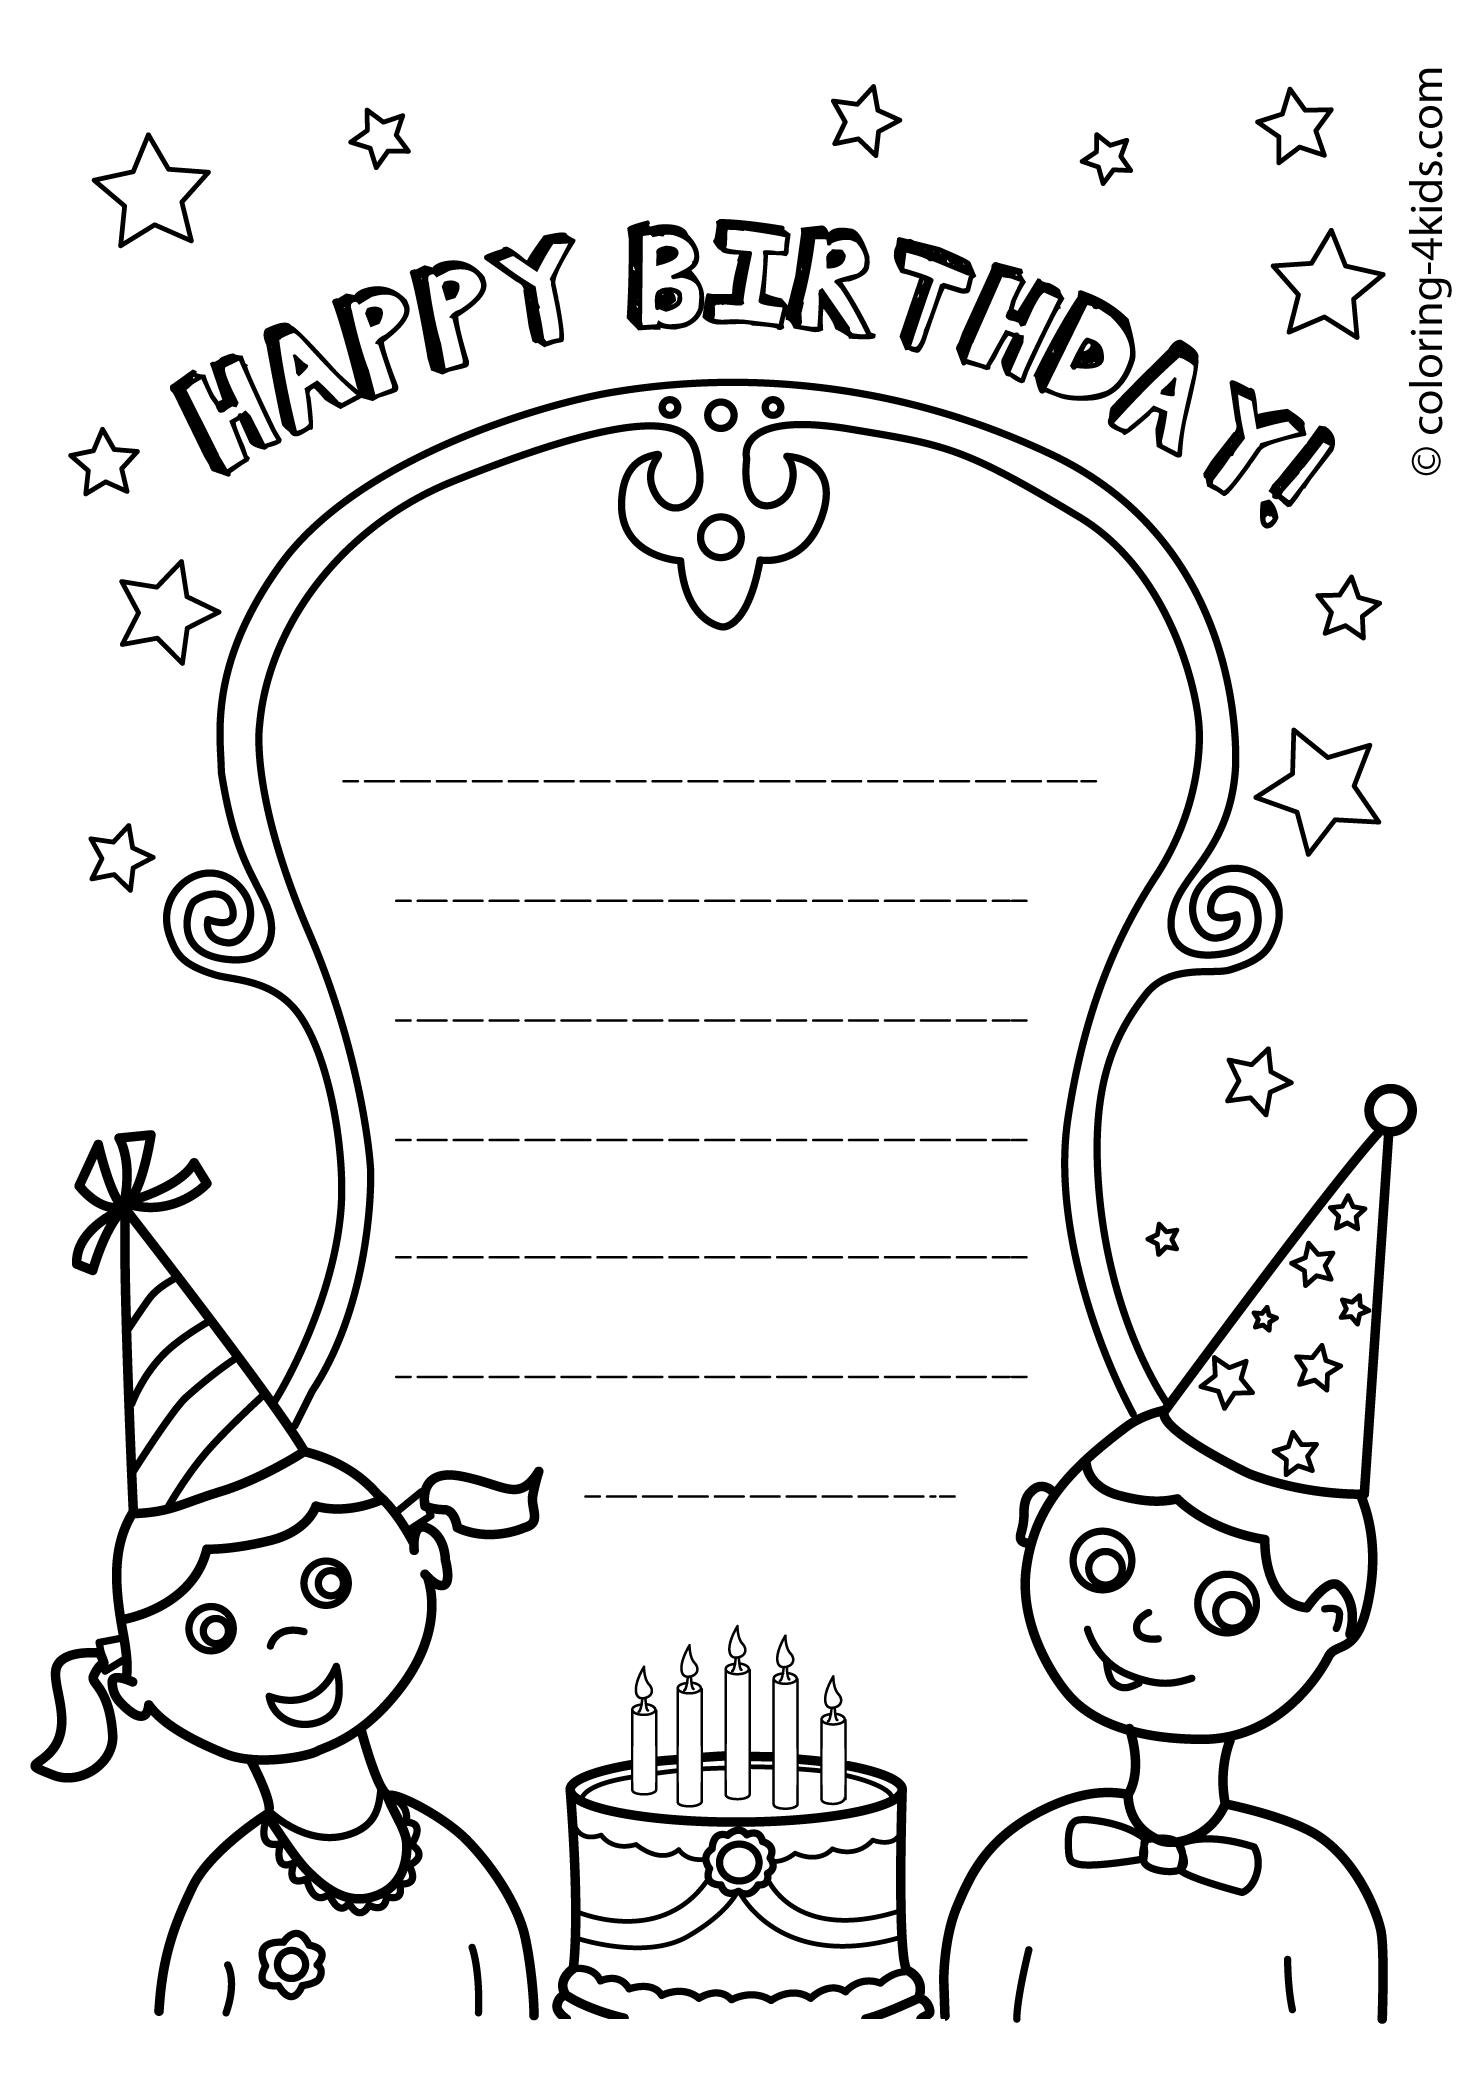 colouring pages for birthday ; bcaa54c36ee3038b8e0a420e72dfe3b7